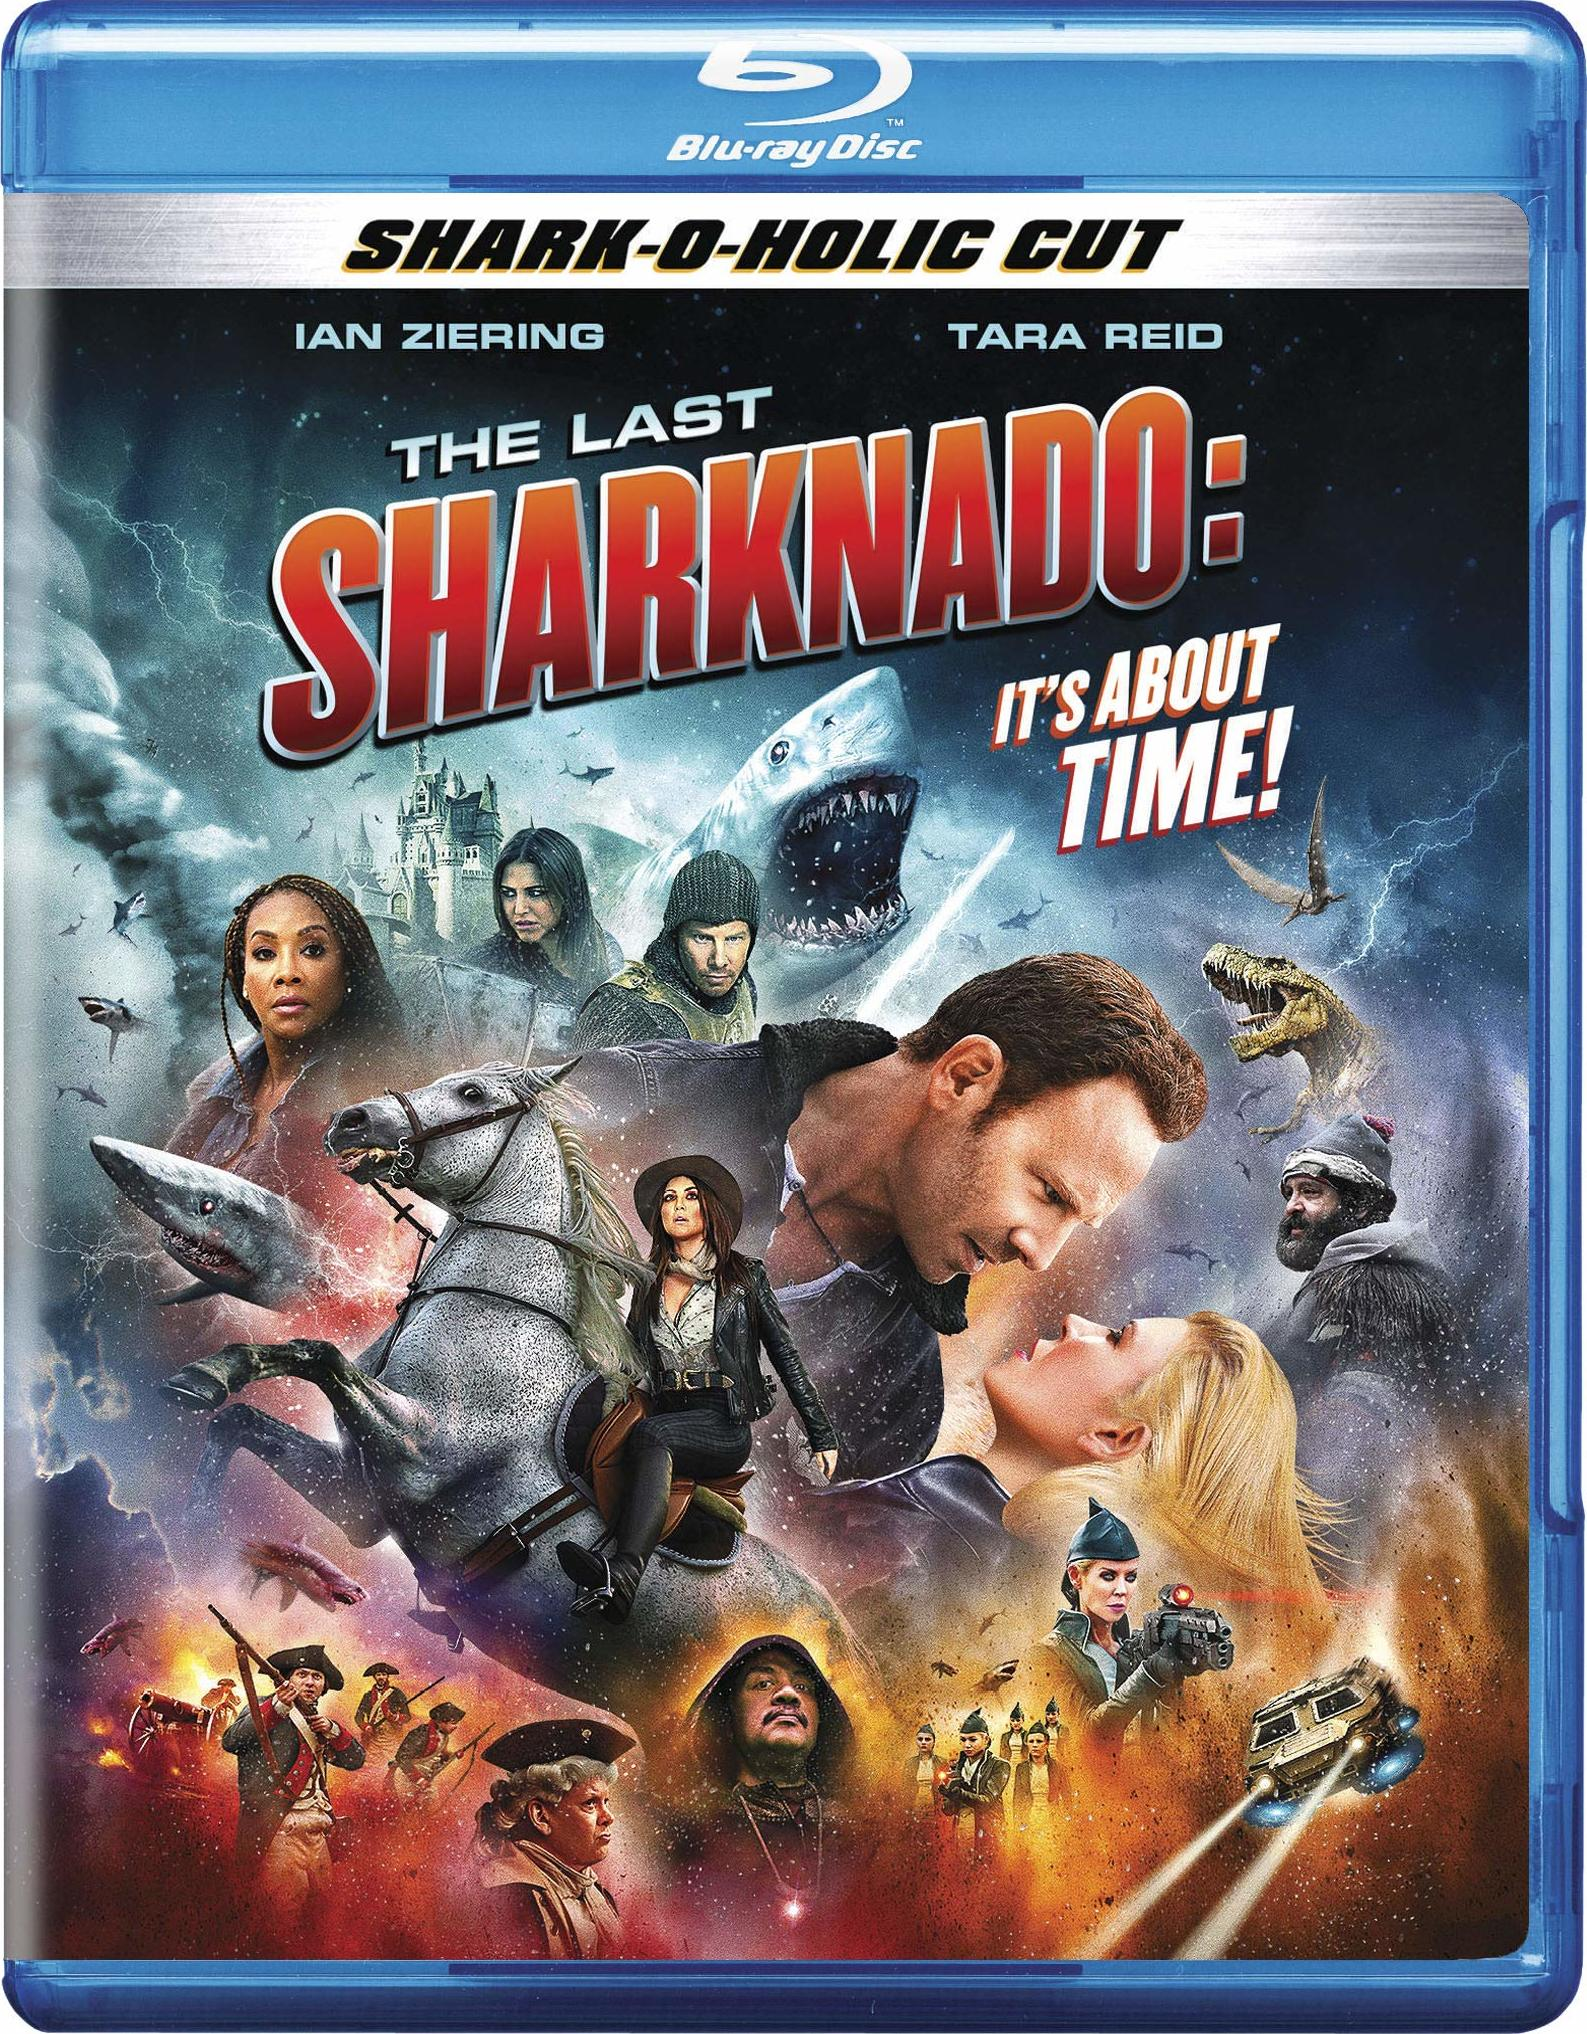 The Last Sharknado: It's About Time (Blu-ray)(Region A)